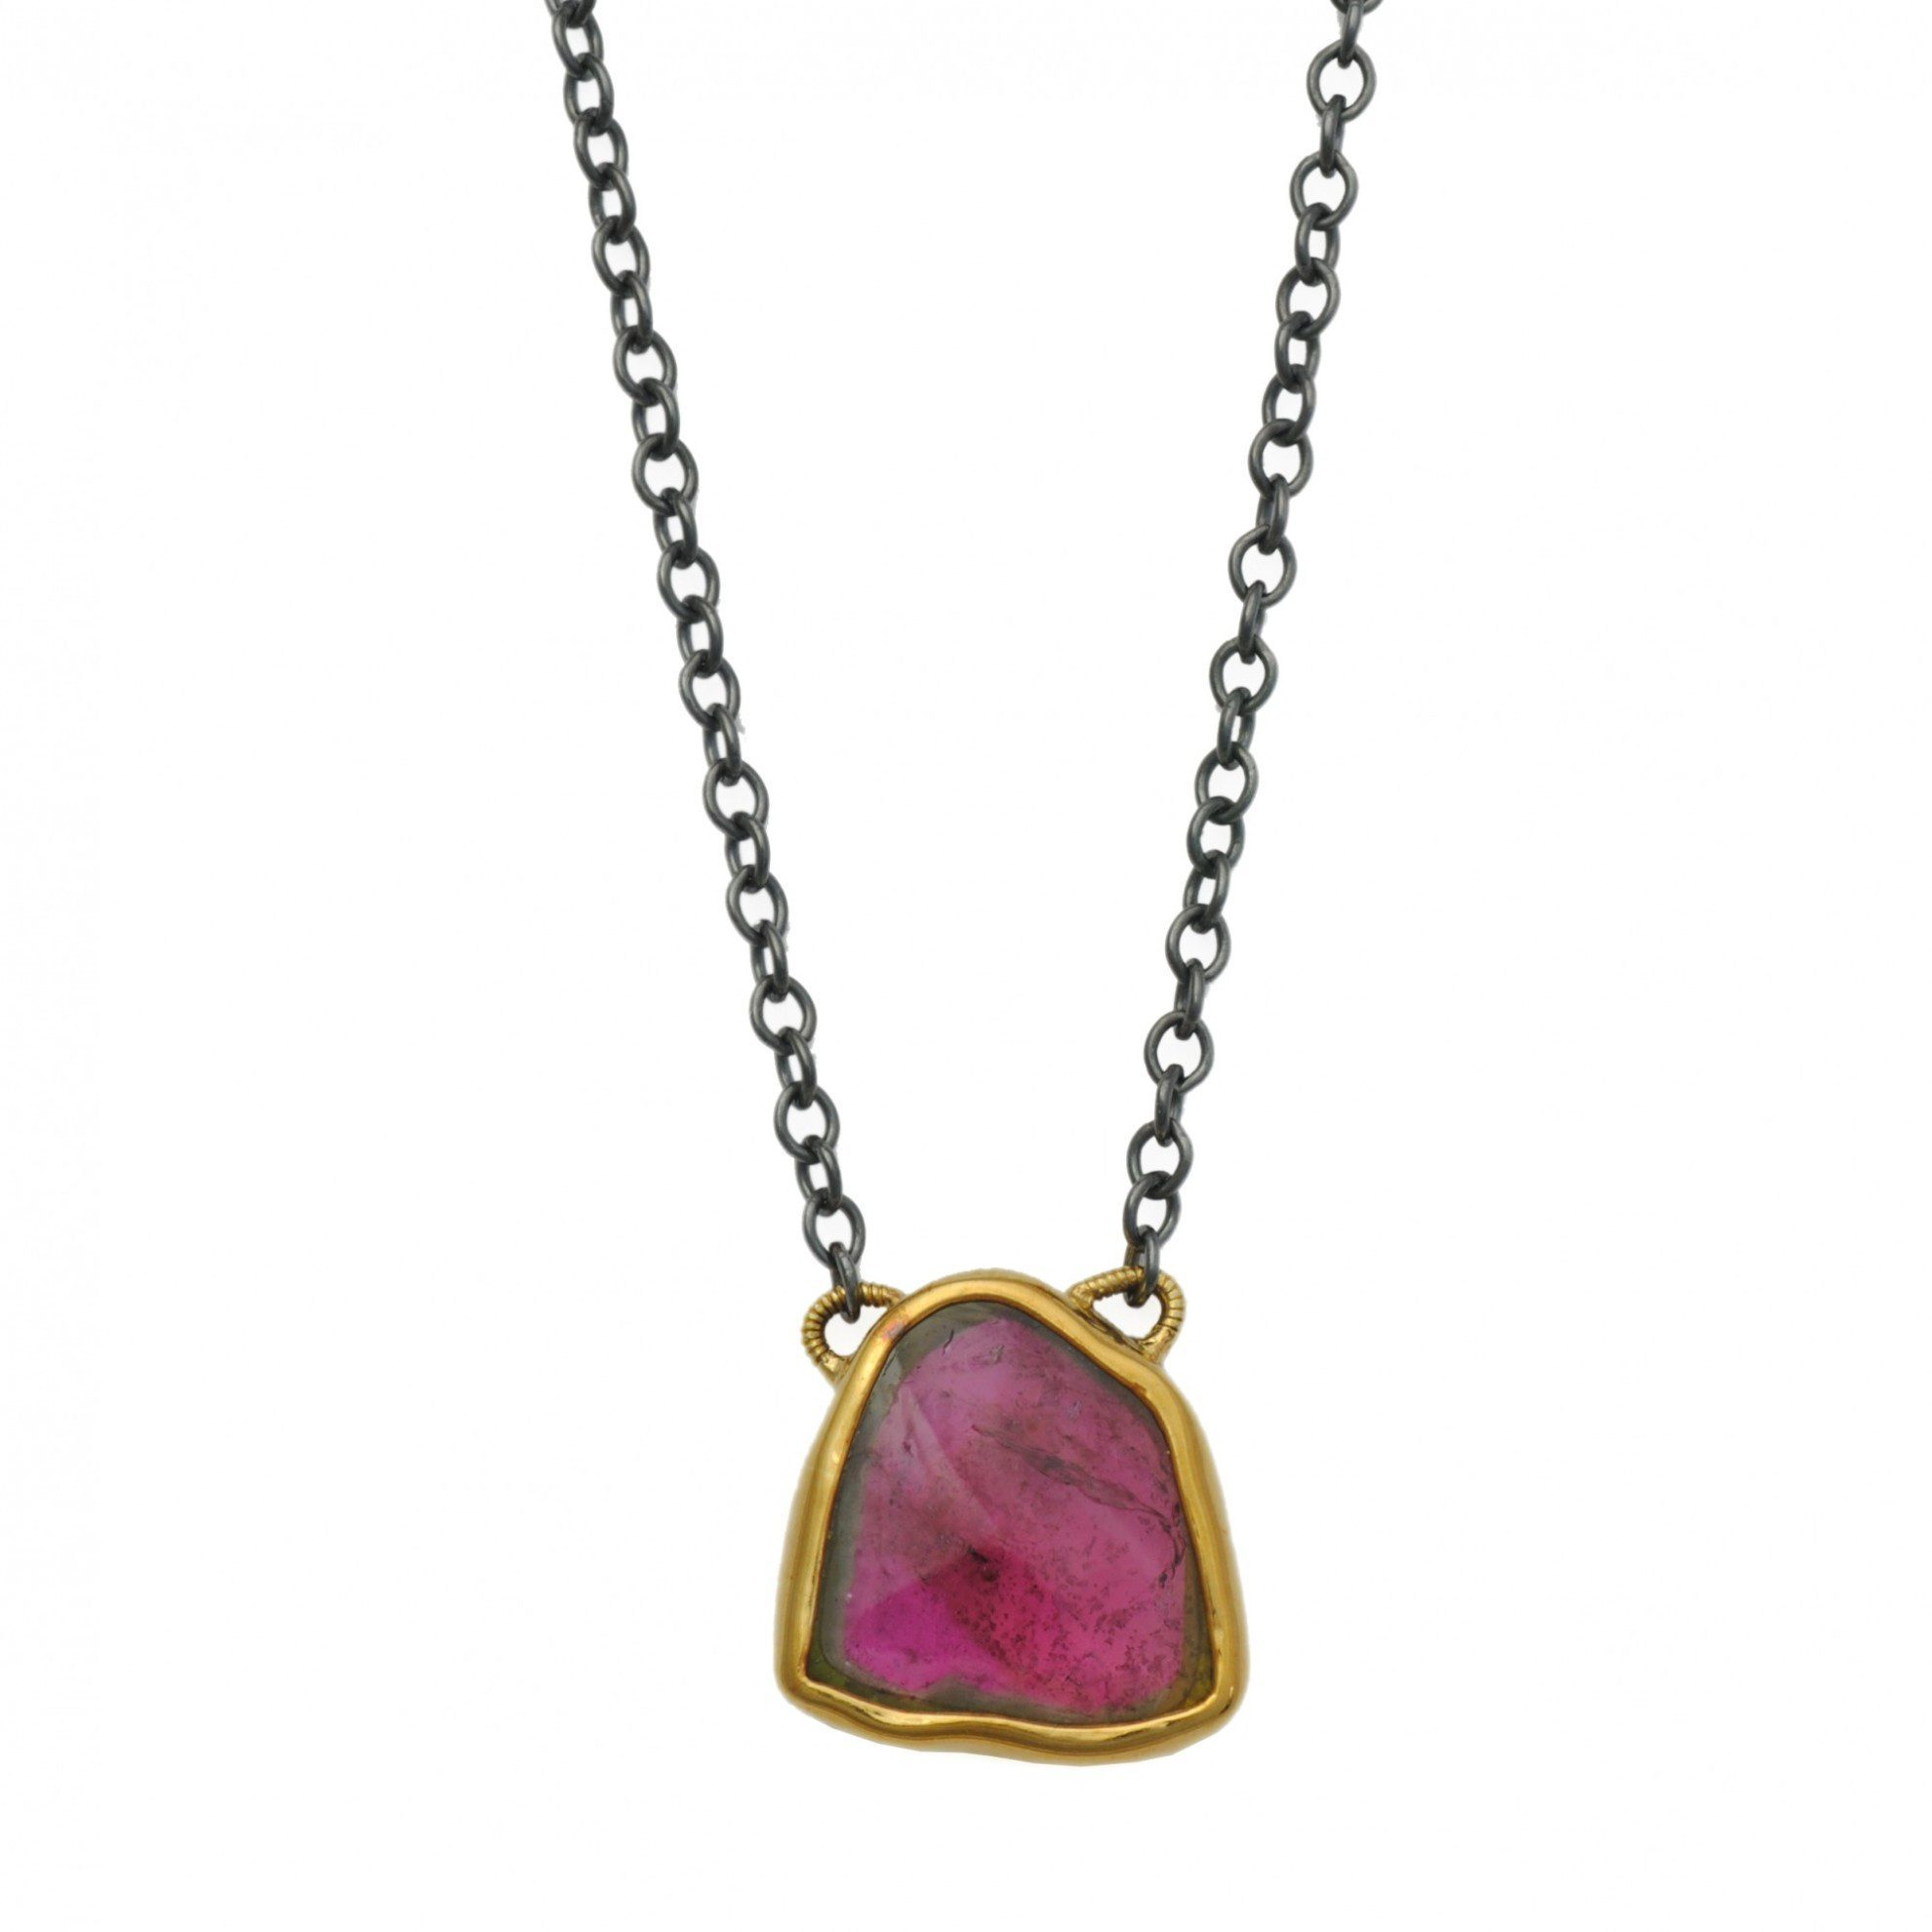 watermelon tourmaline buying guide - sugarloaf cabochon pendant